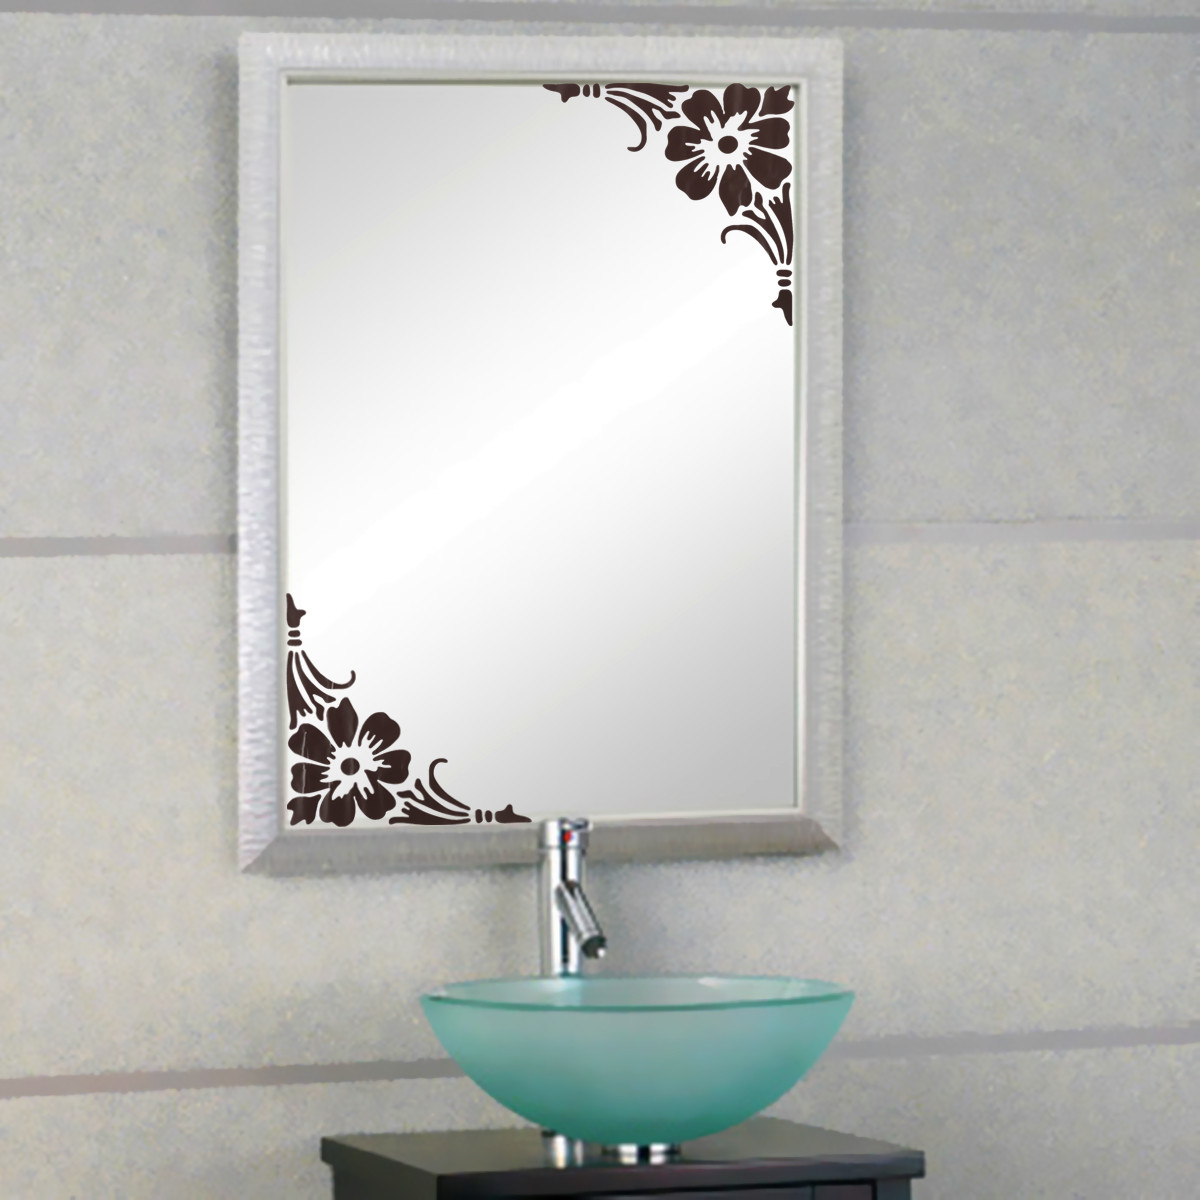 book of stickers for bathroom mirrors in uk by michael. Black Bedroom Furniture Sets. Home Design Ideas